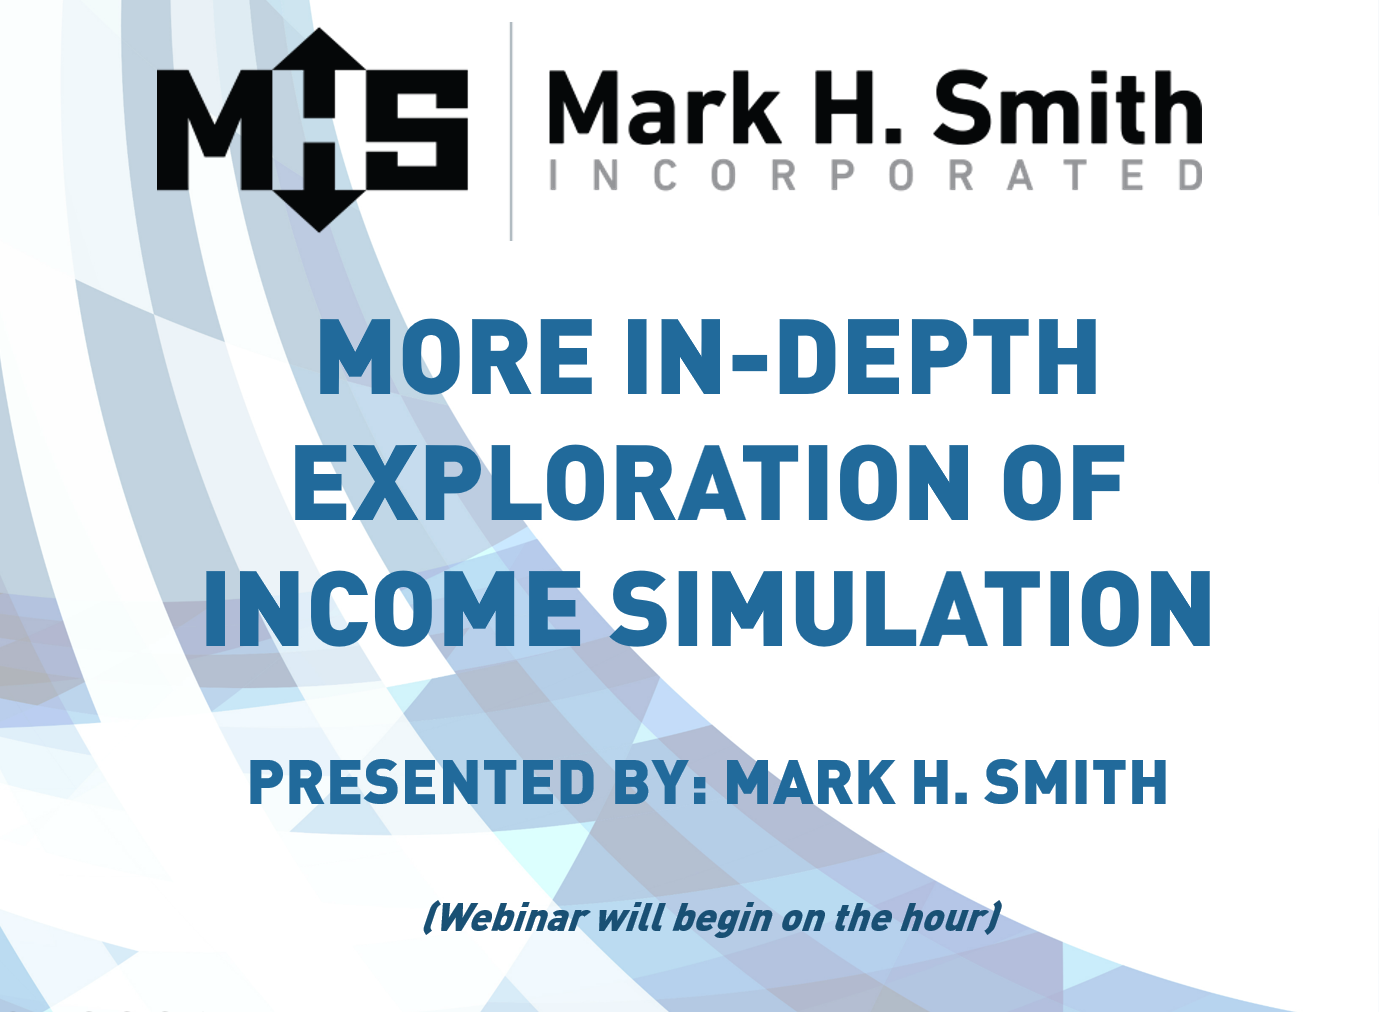 More In-Depth Exploration of Income Simulation